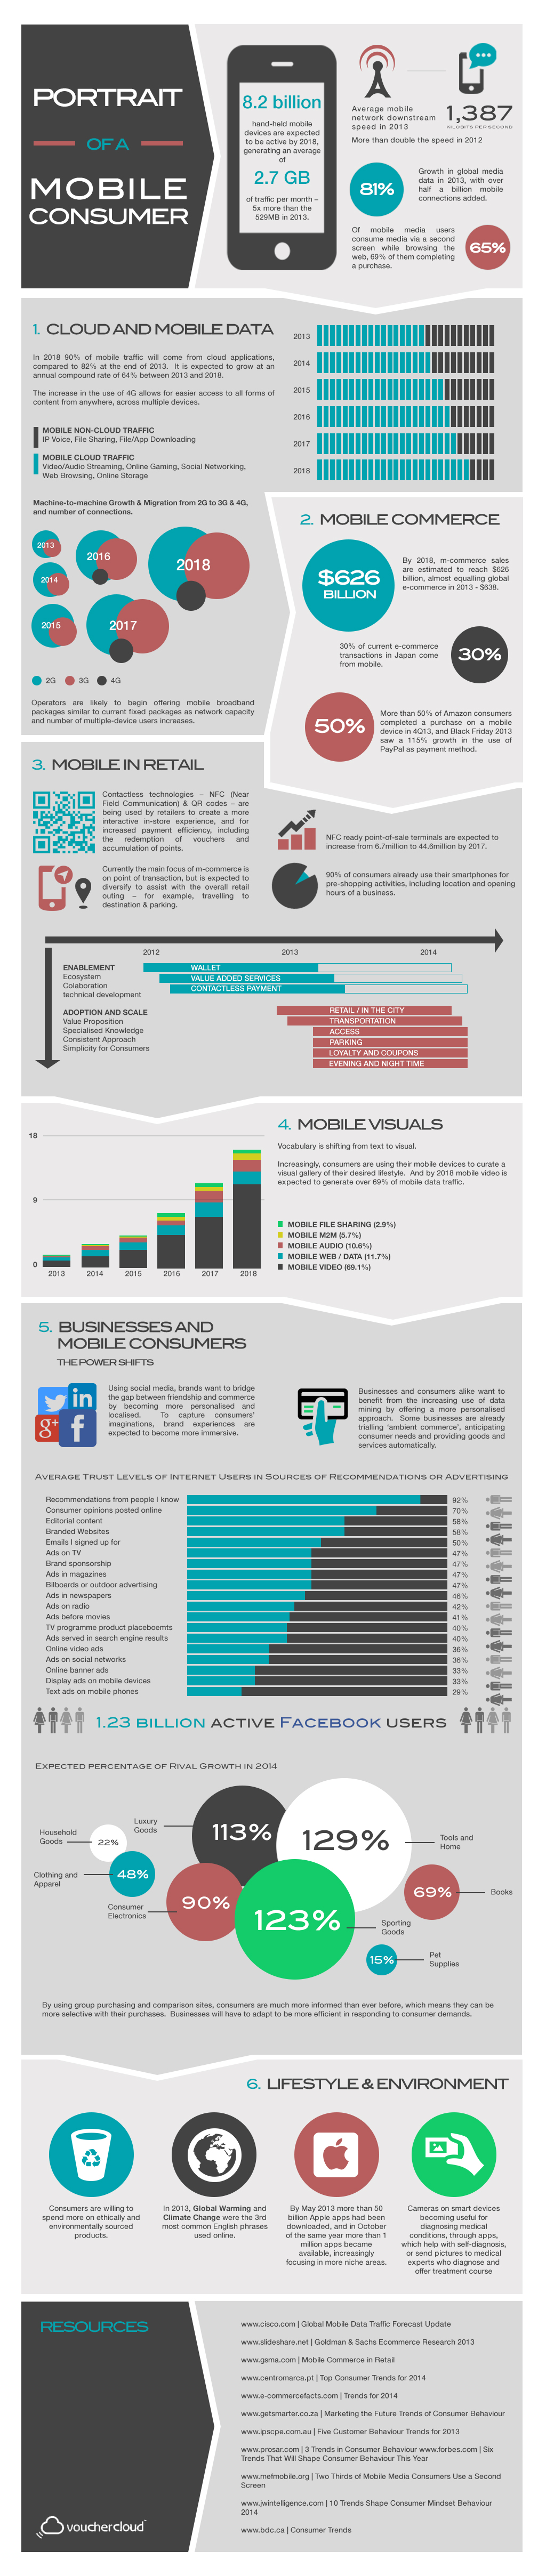 mobile consumers